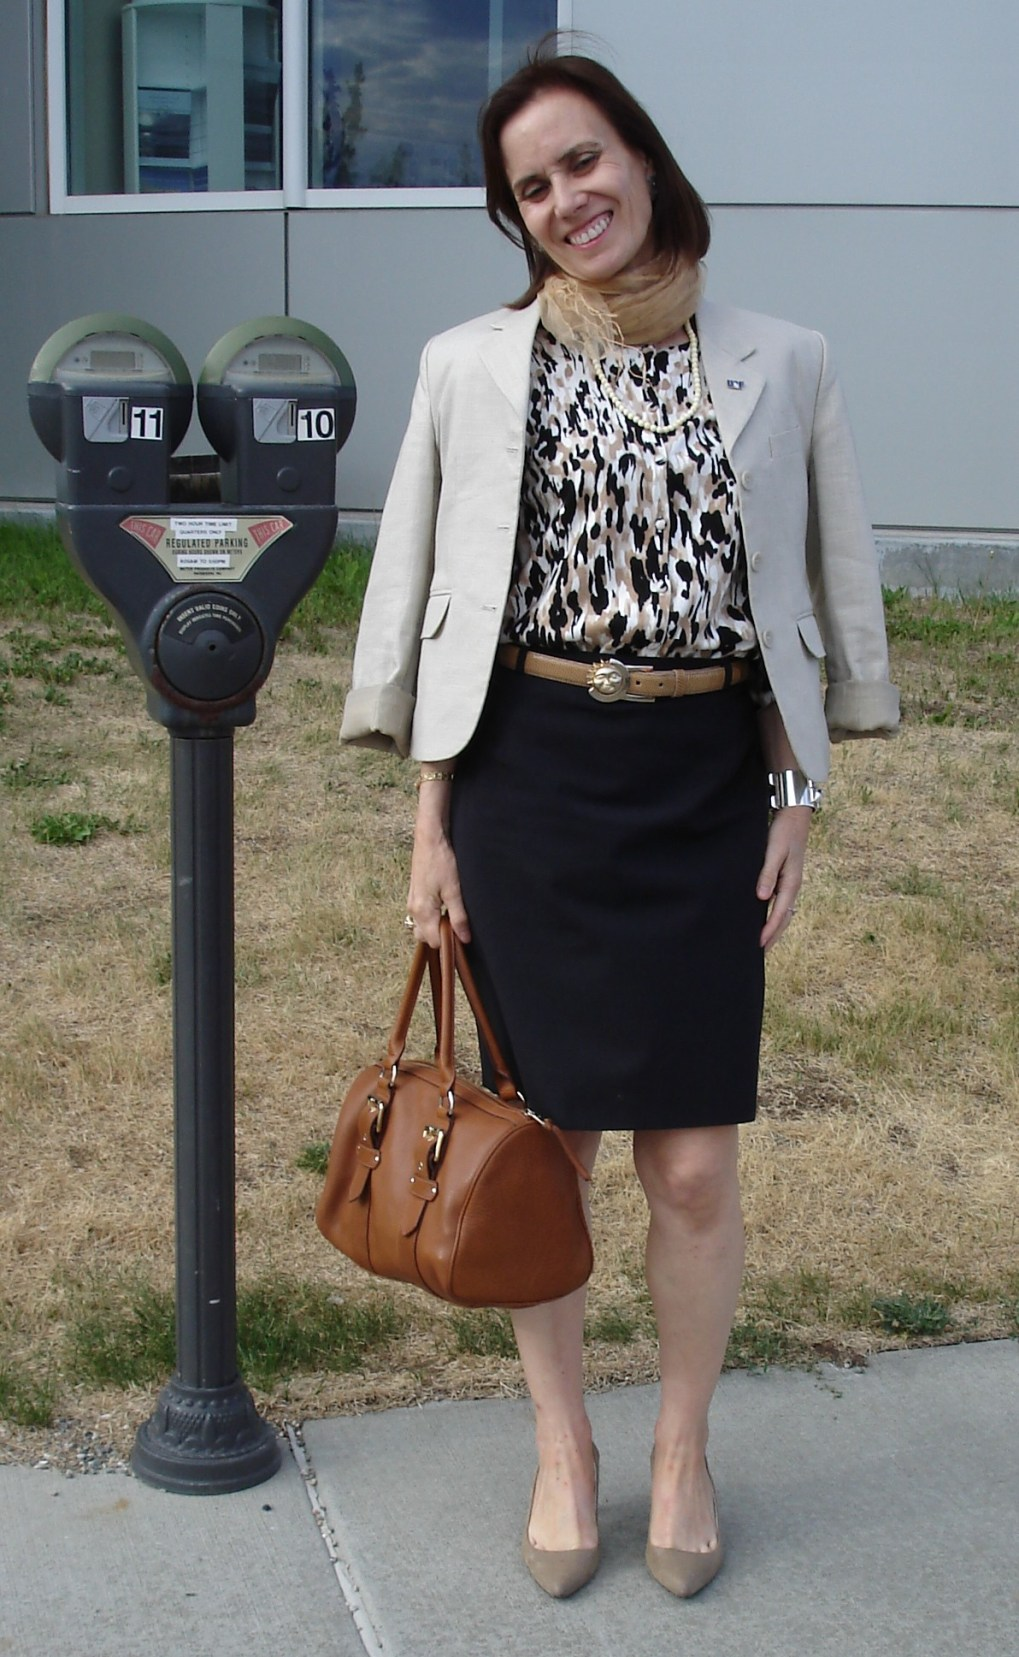 #fashionover50  mature woman in interview outfit